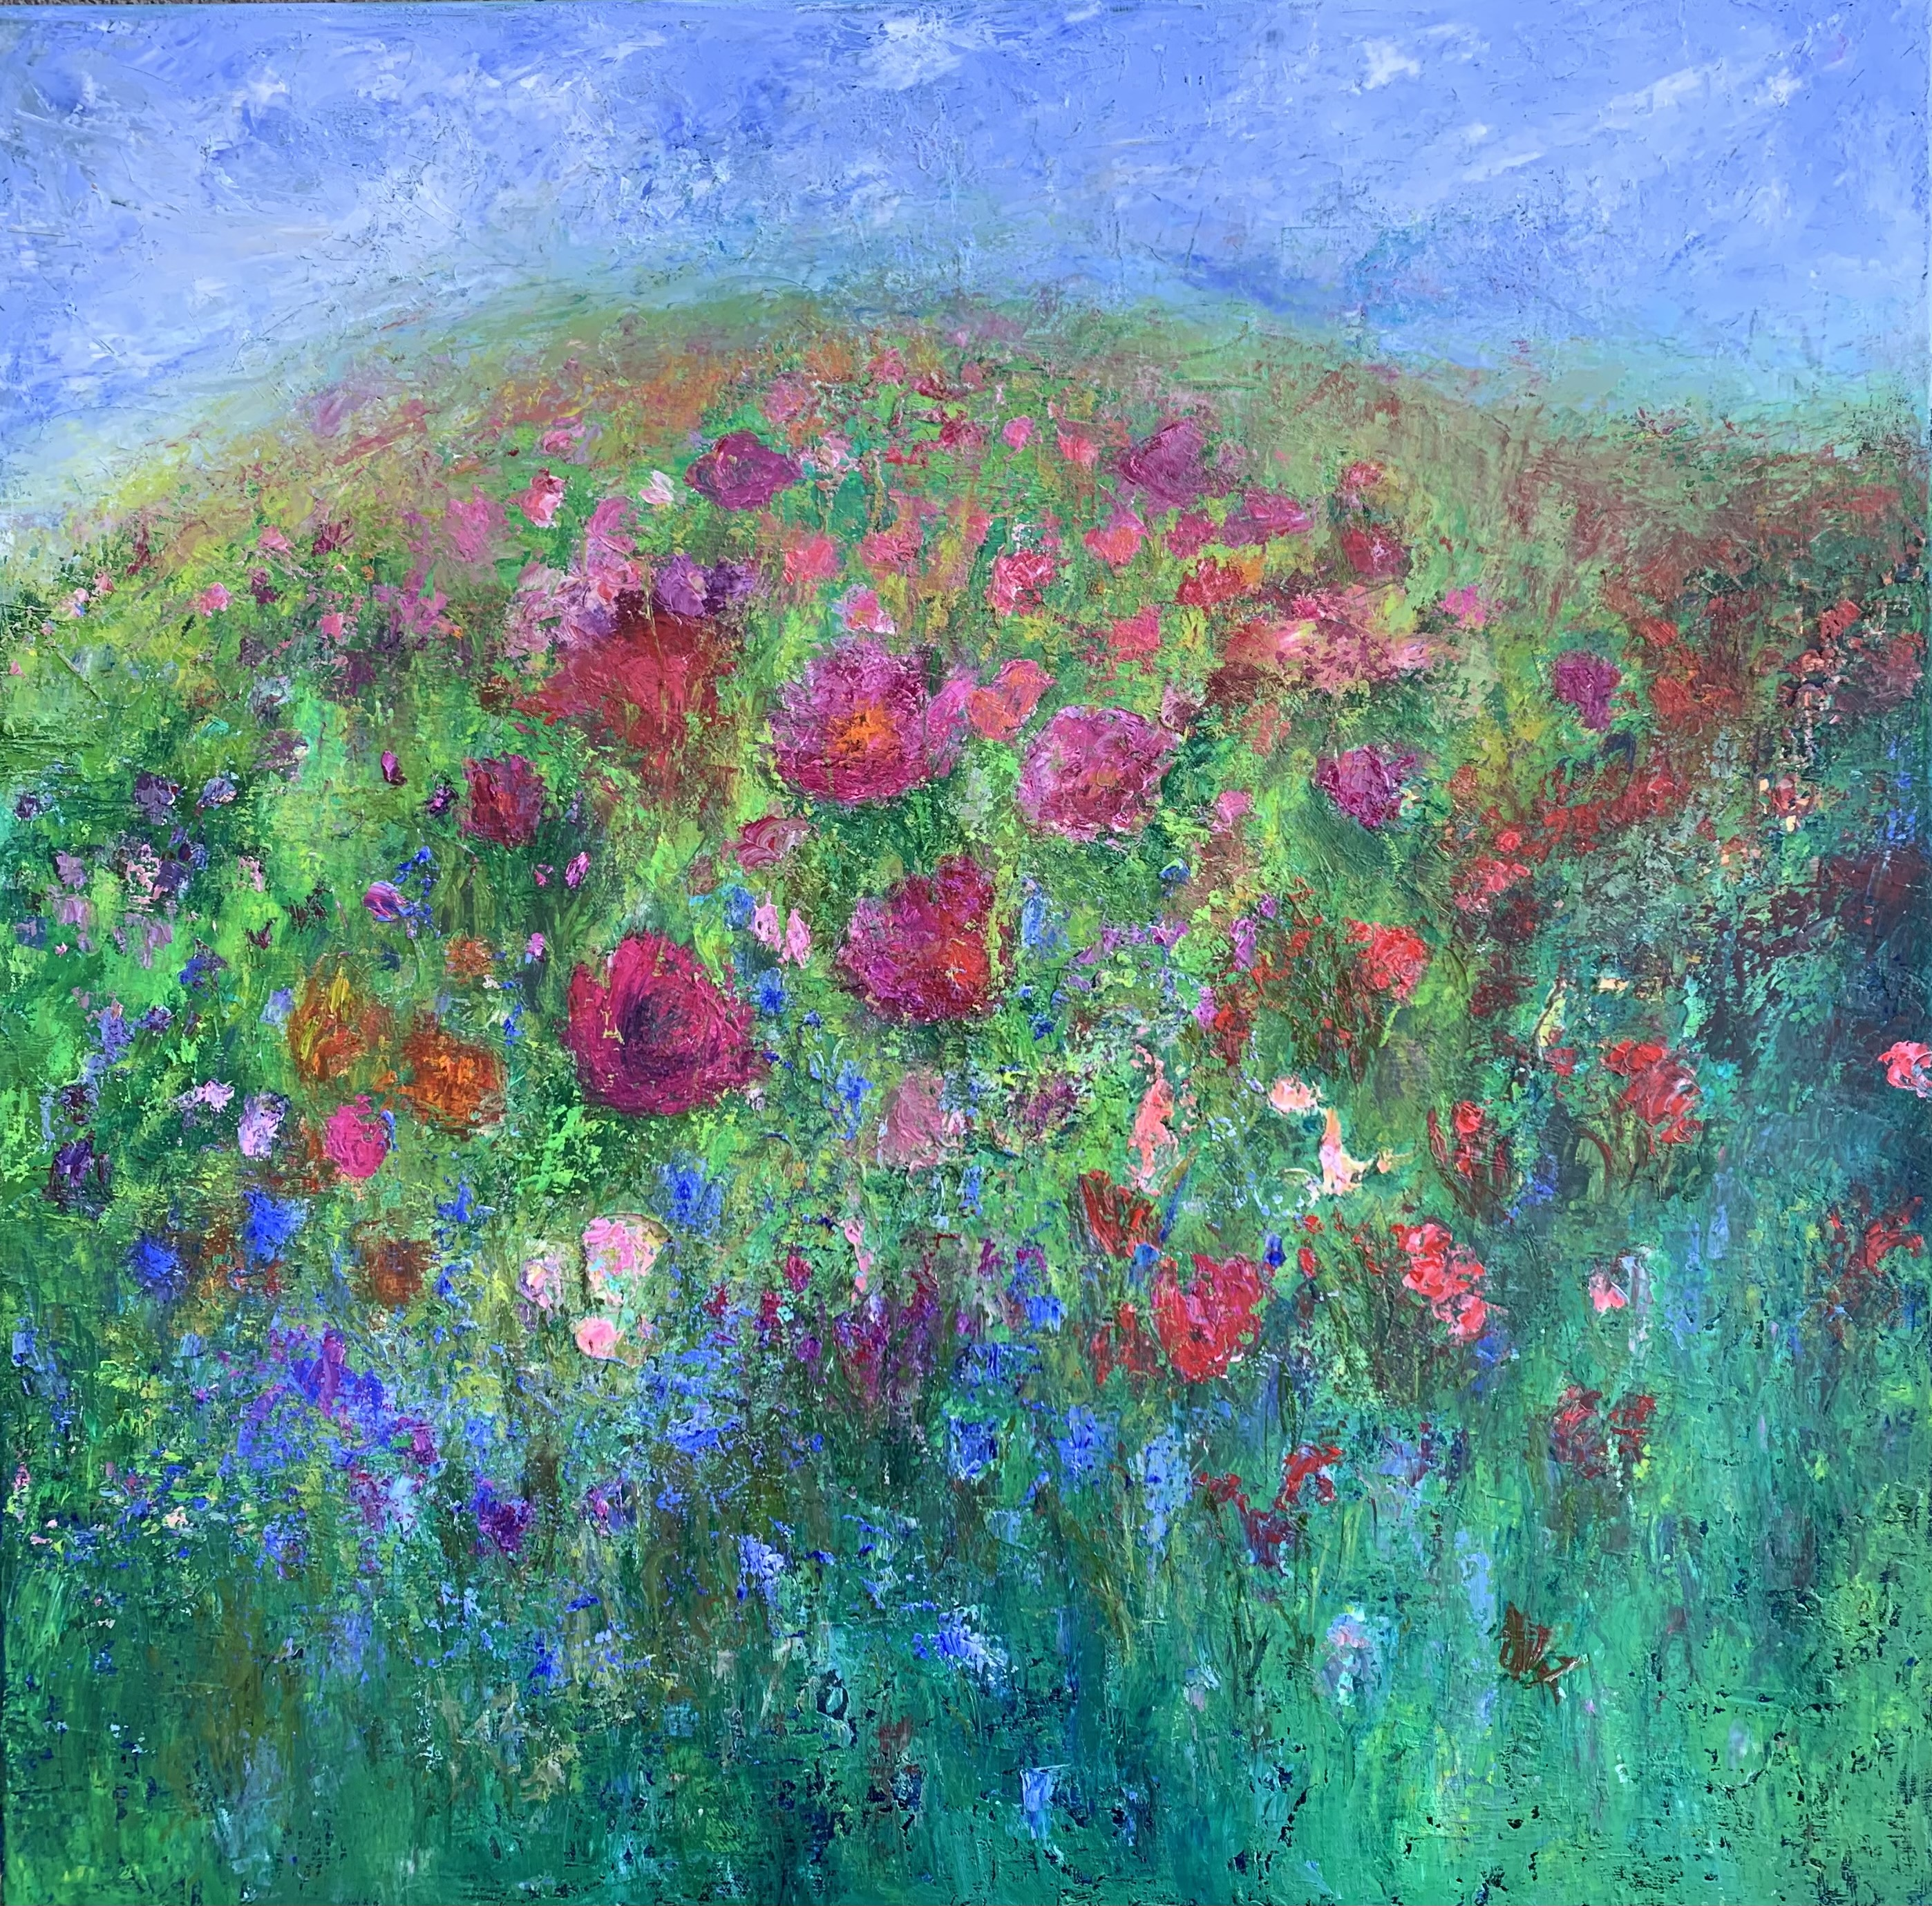 Field of Flowers 2